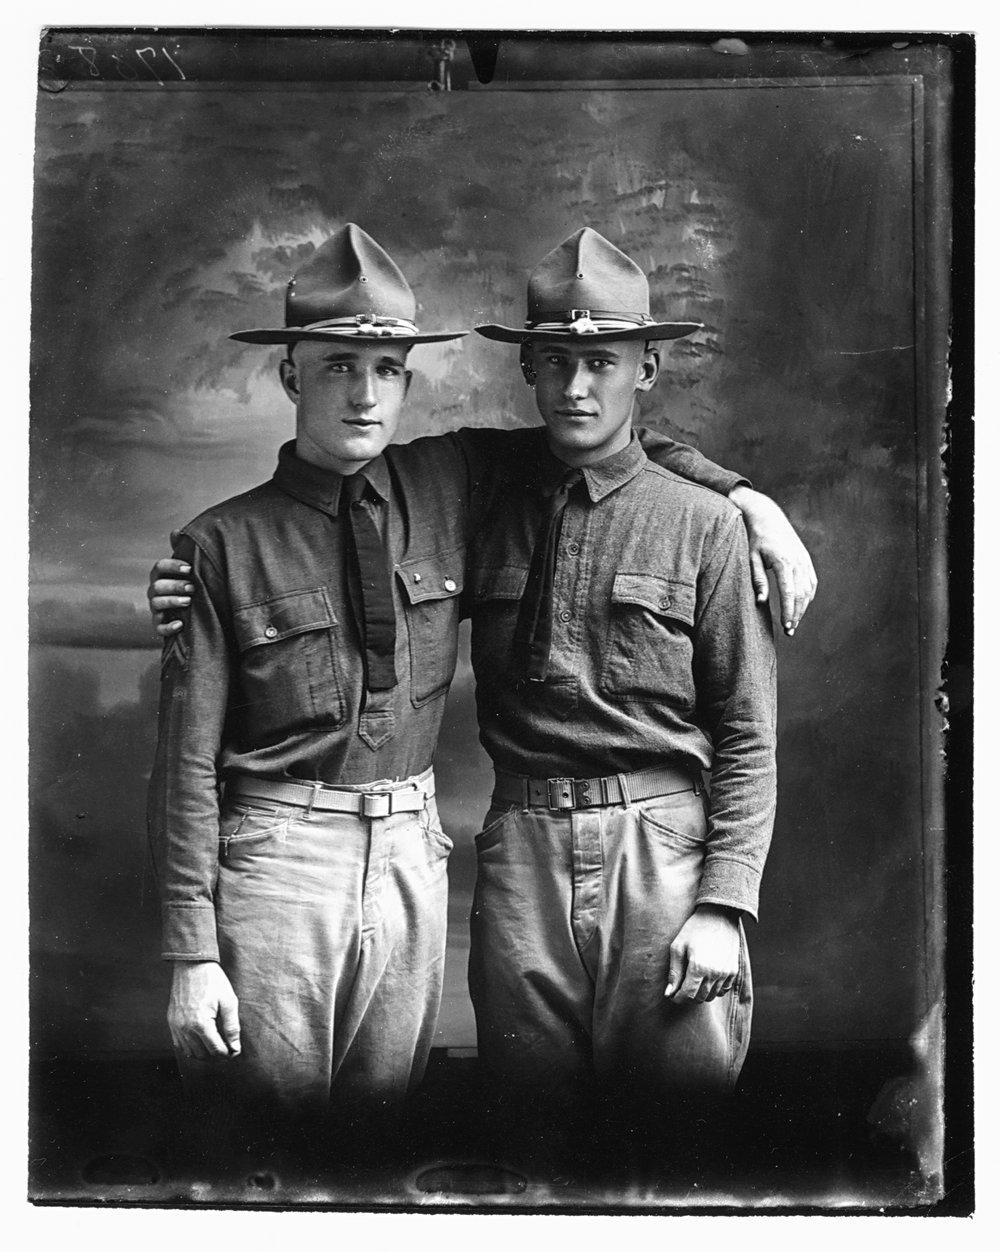 Photograph of two unidentified World War I soldiers